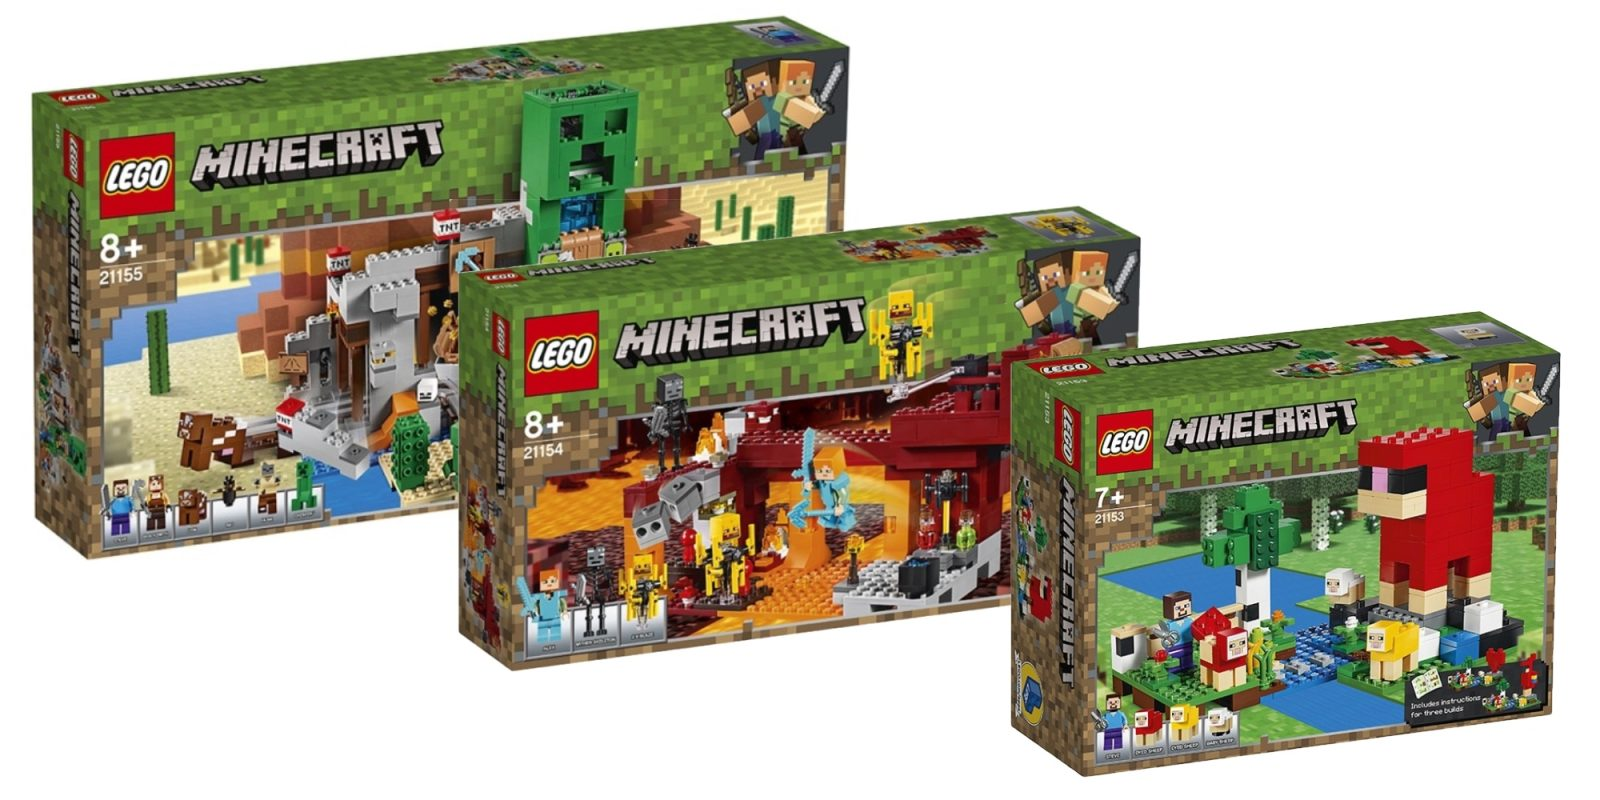 LEGO assembles three new Minecraft creations due out later this summer